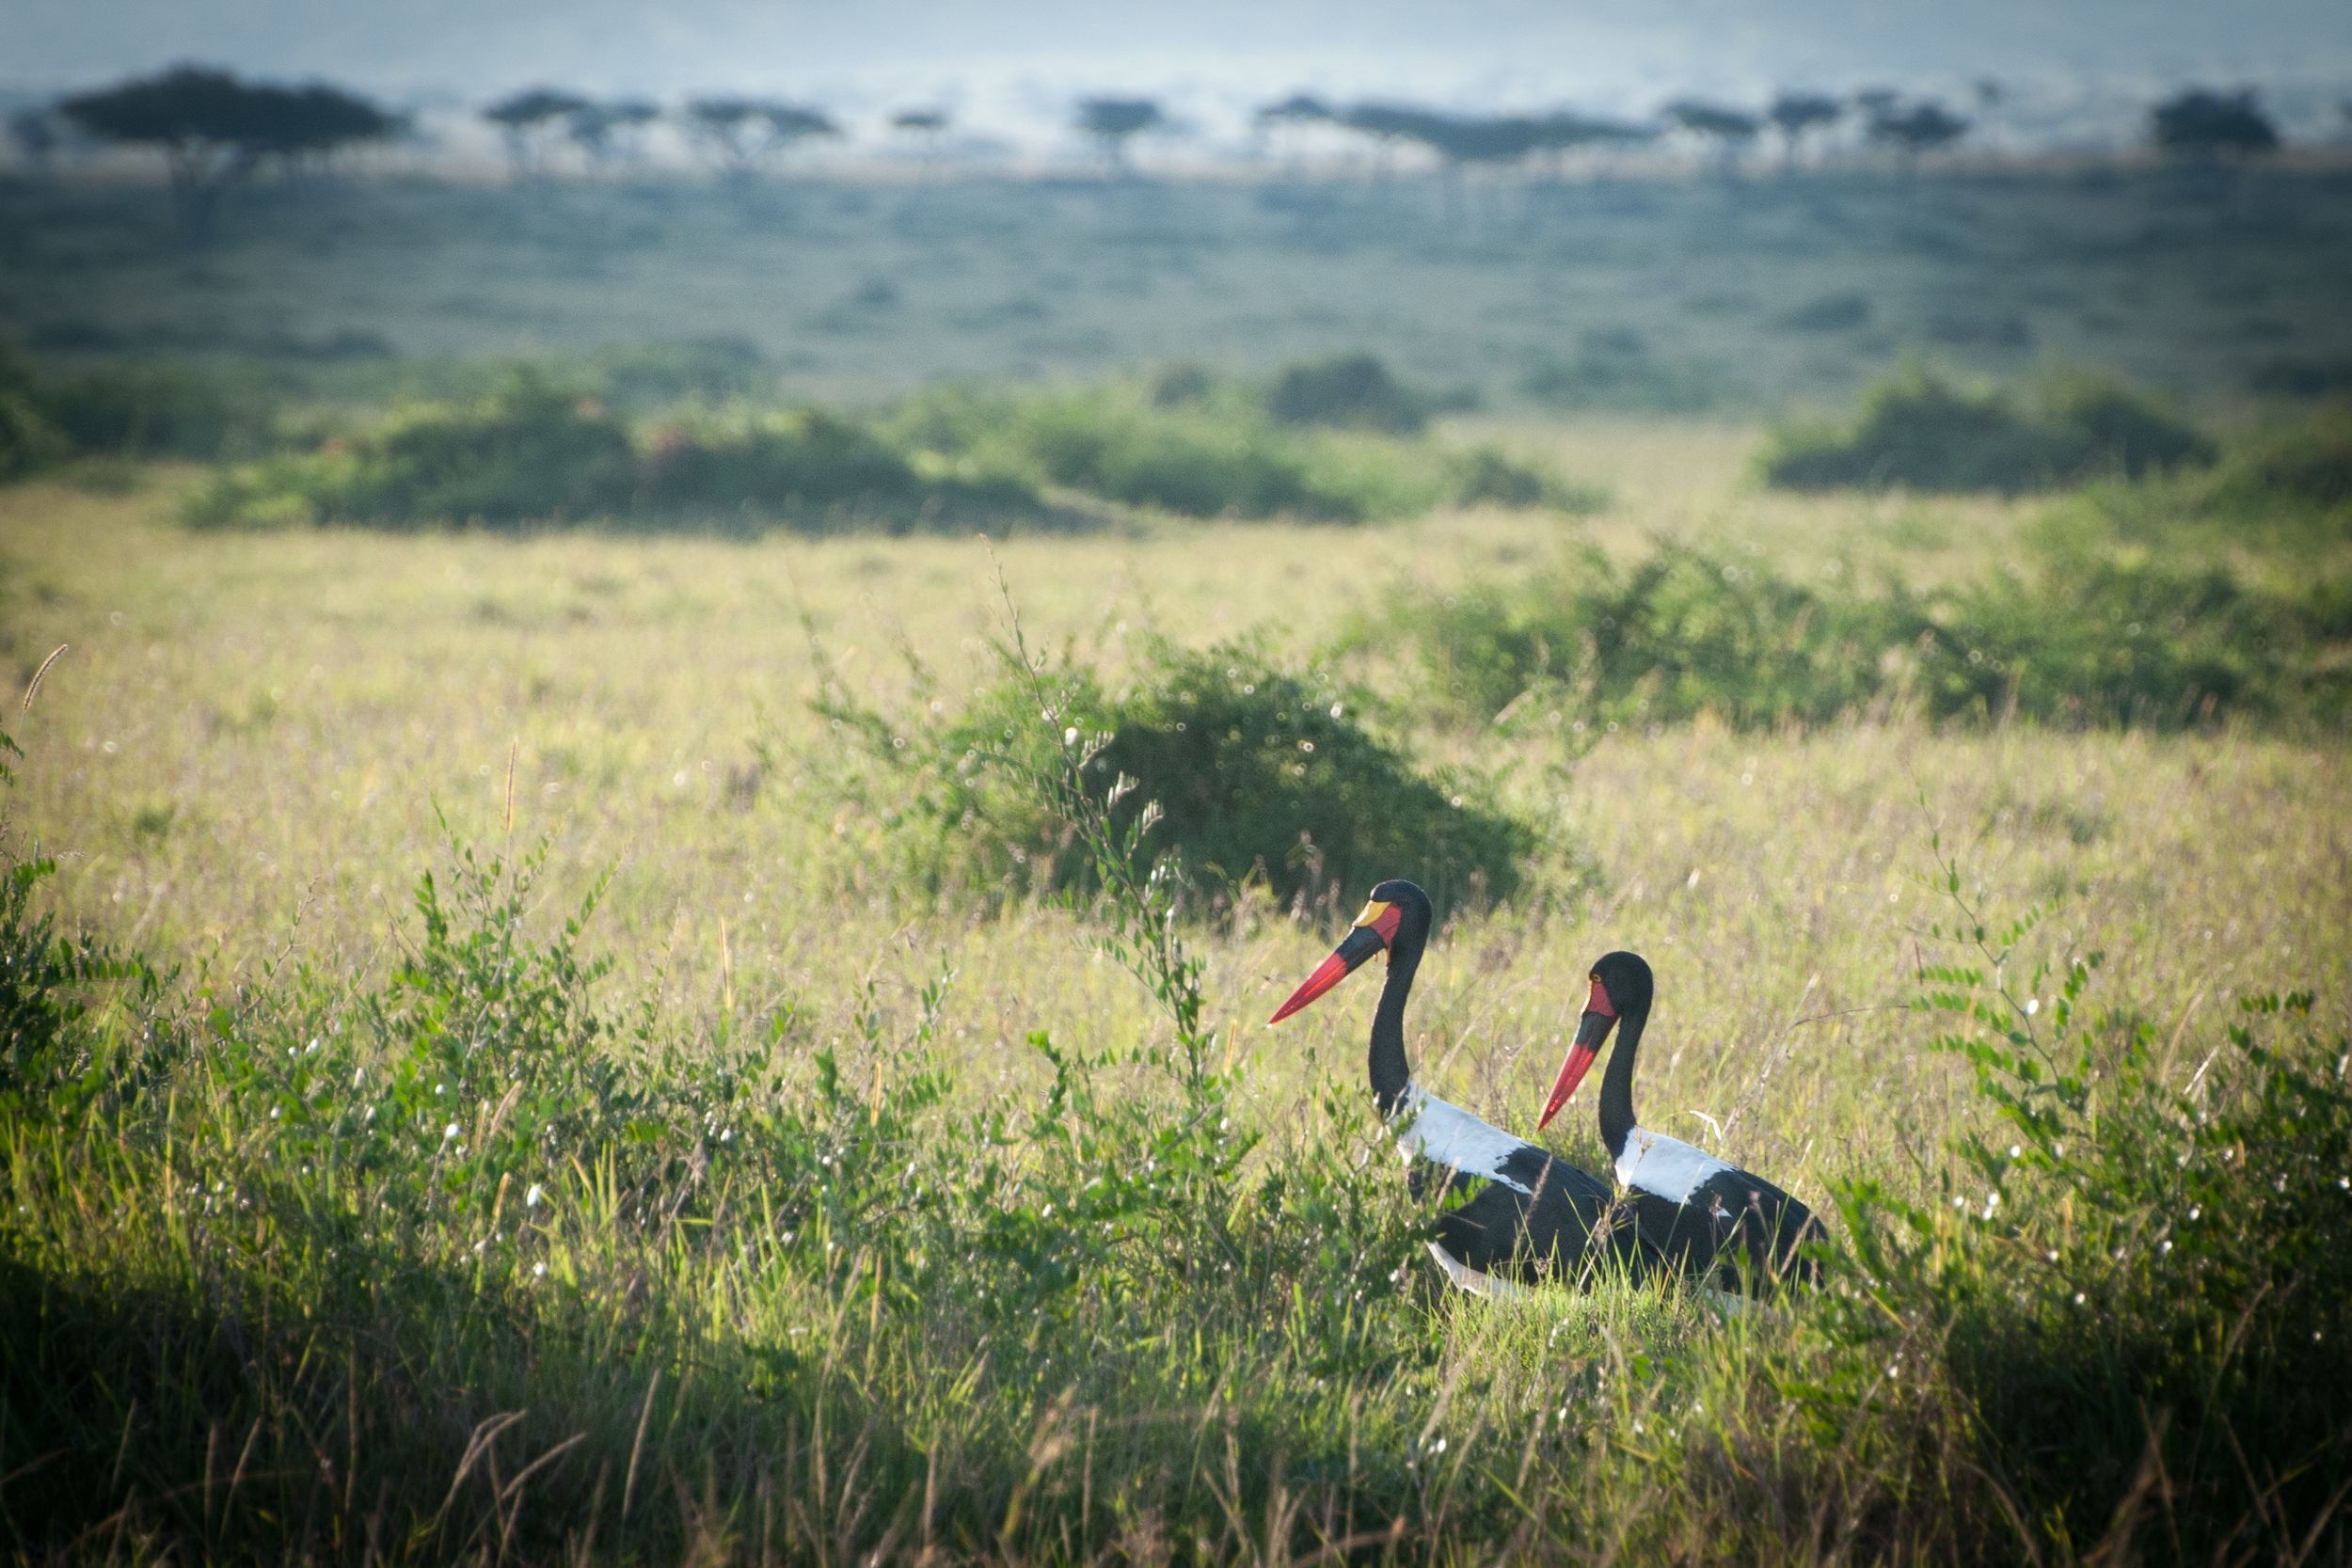 Saddle-billed Stork, Masai Mara